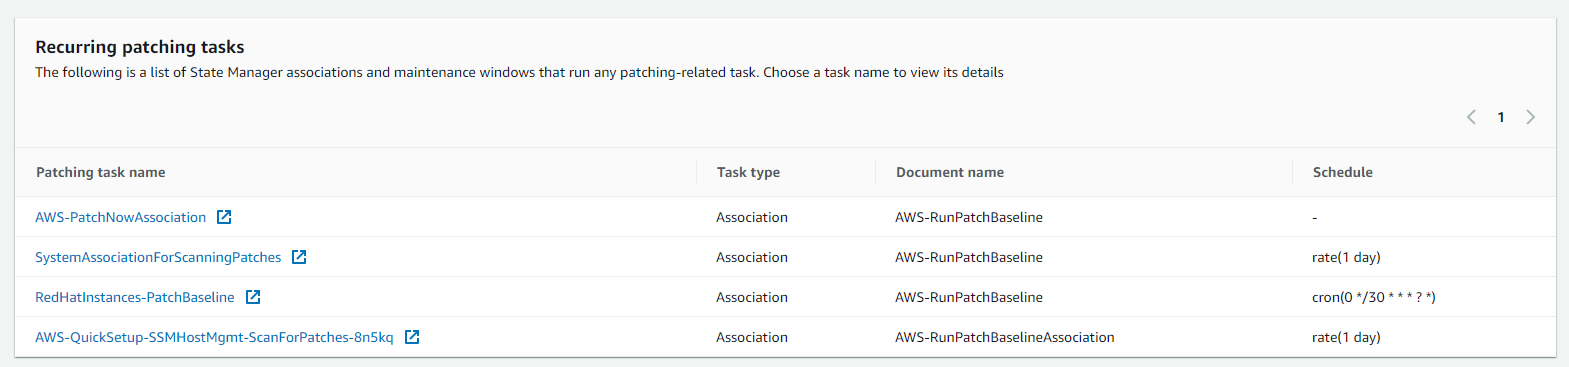 Figure 5. List of all recurring patching tasks